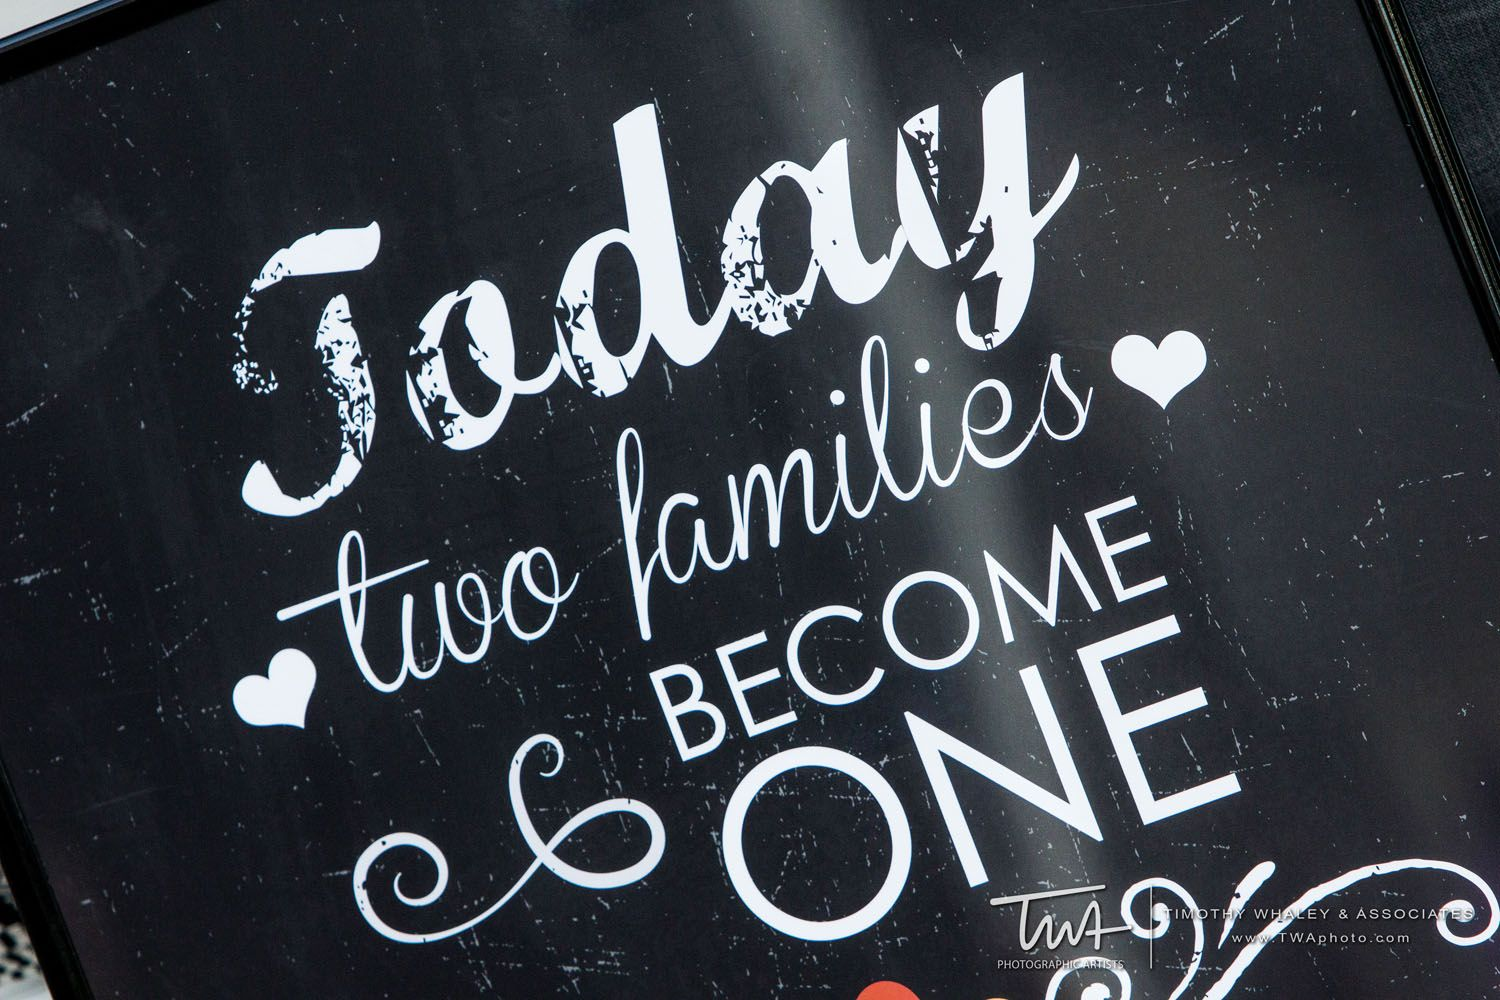 Today Two Families Become One 2019 Quotes We Love Twa Wedding